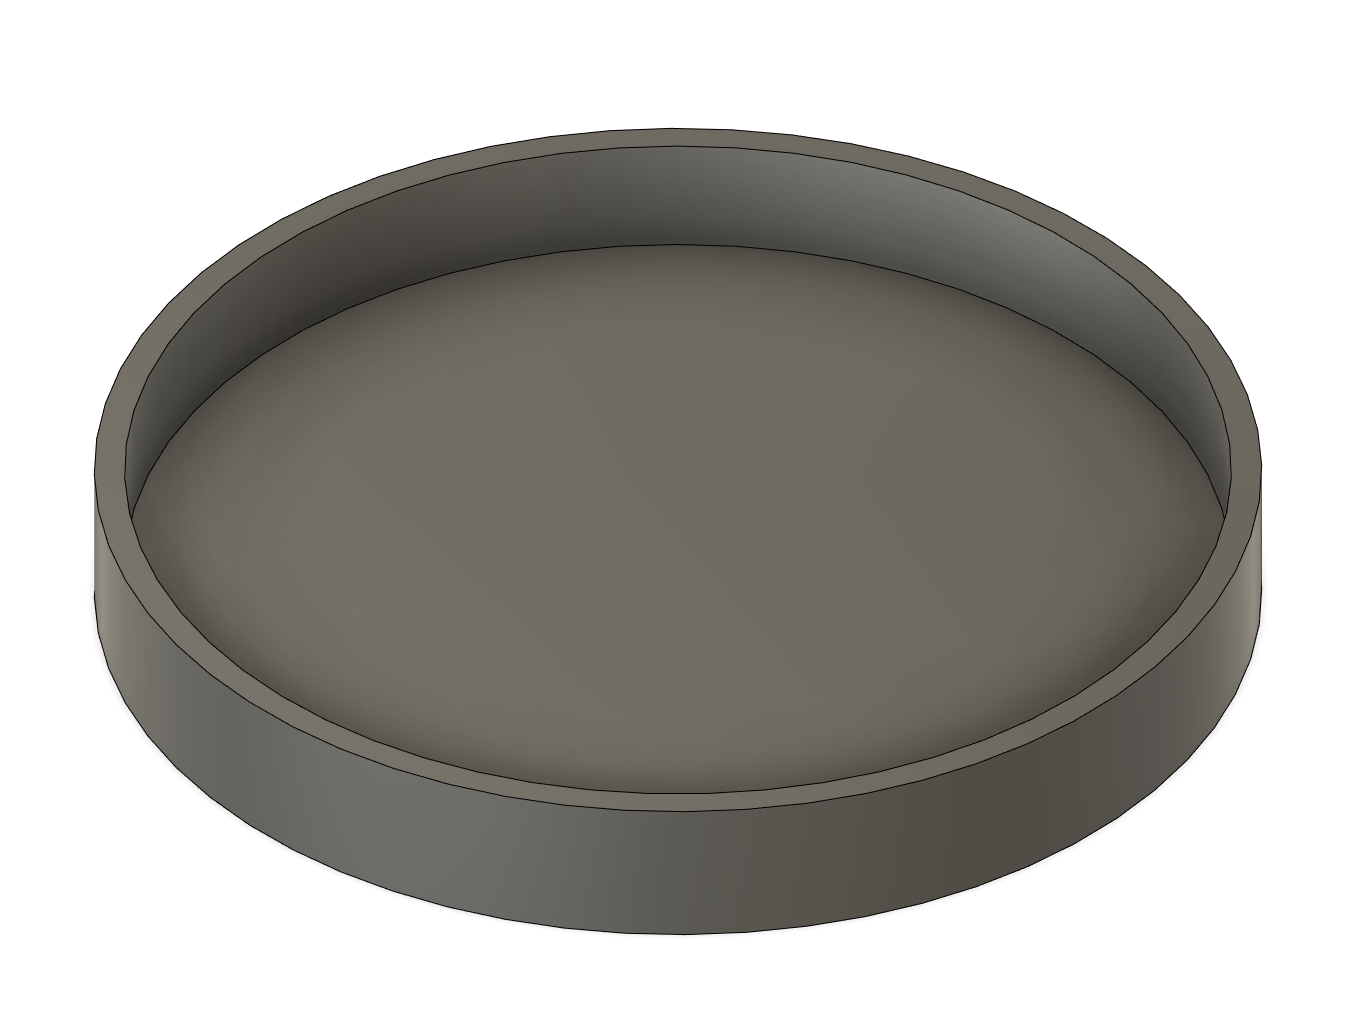 CAD file of a tin can lid.